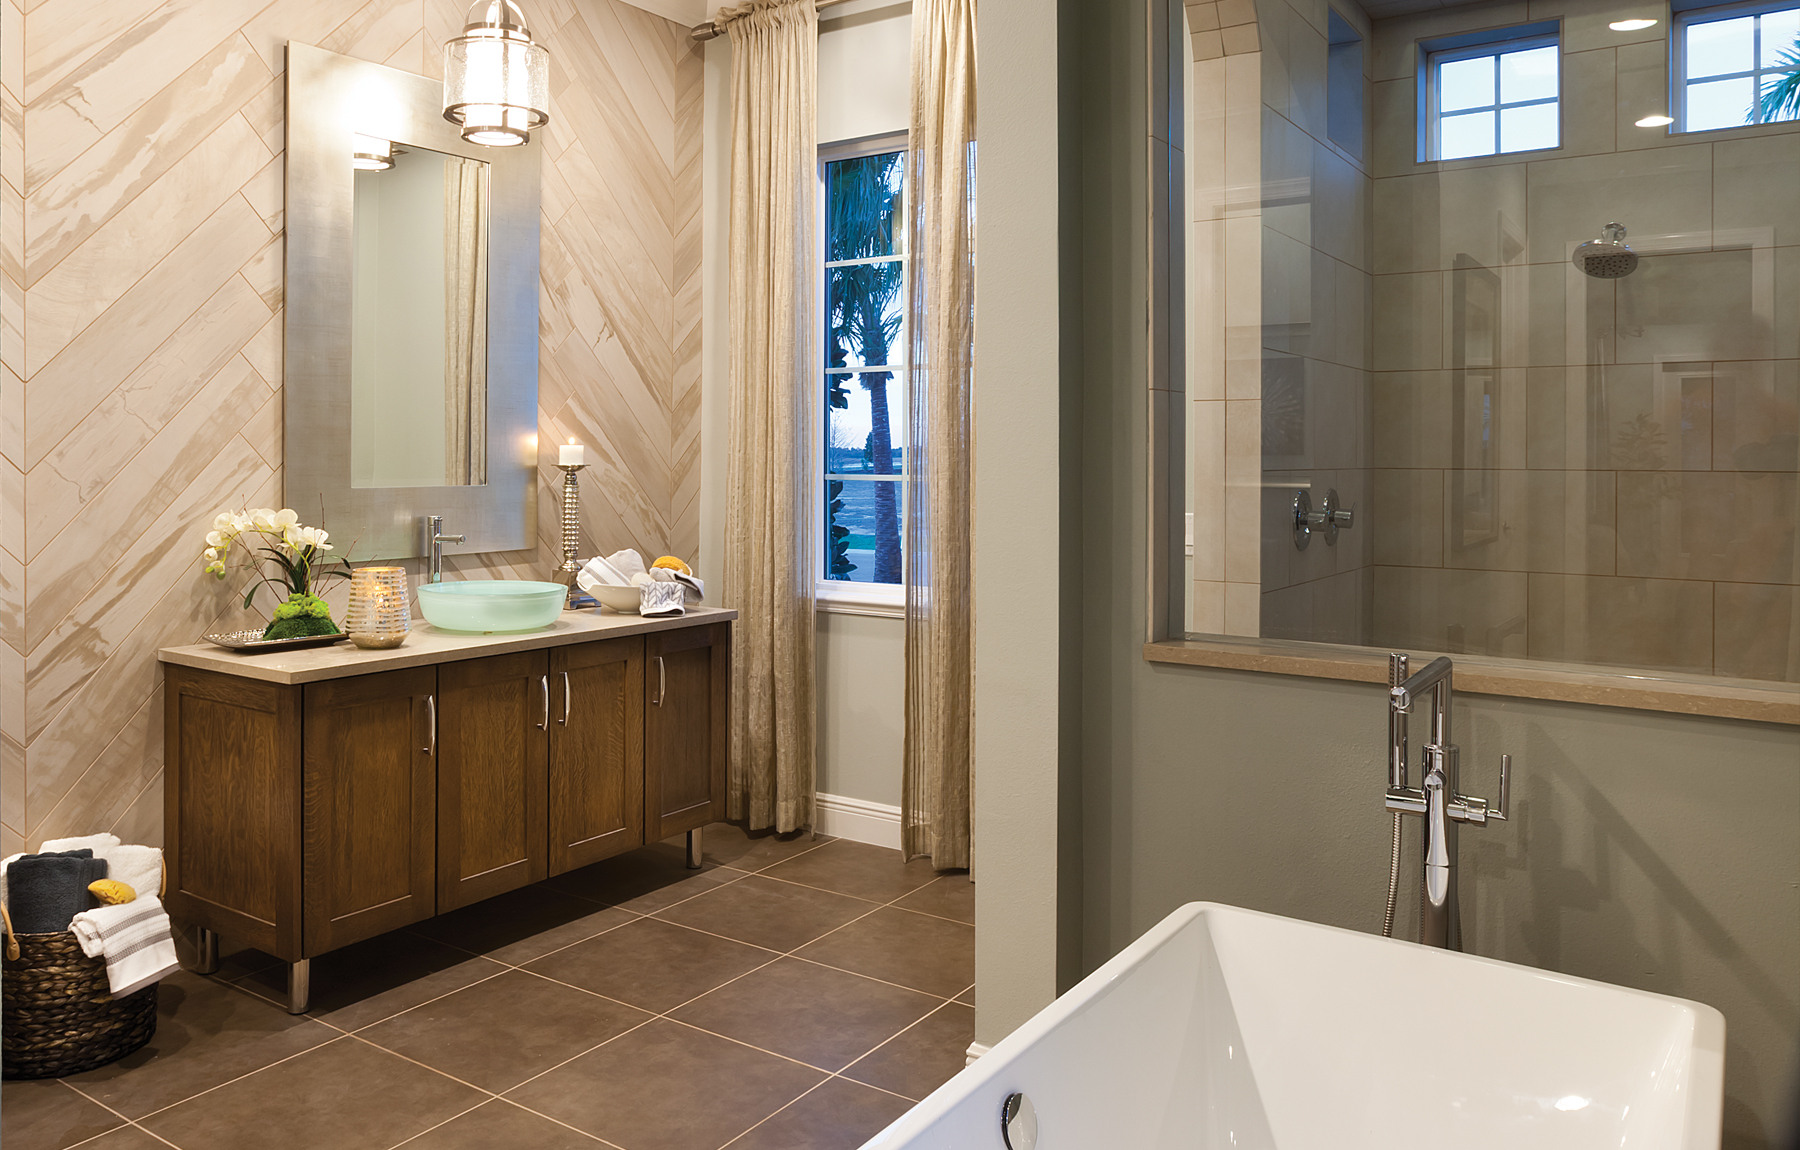 The Kiandra John Cannon Homes master bath